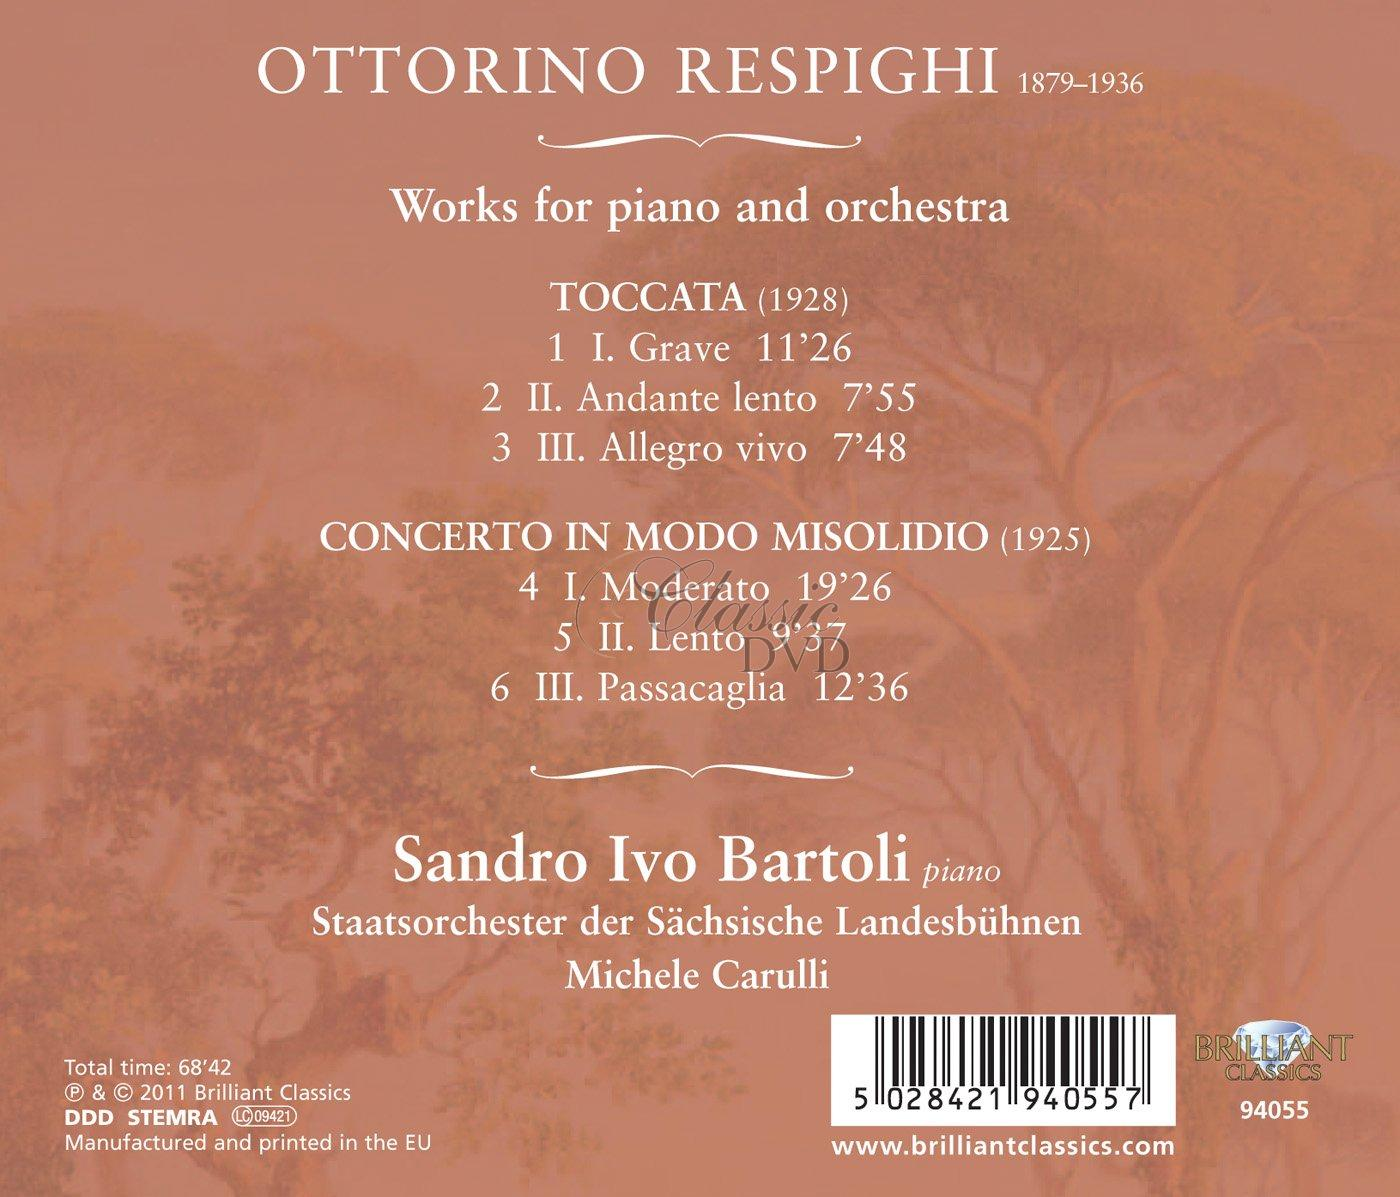 RESPIGHI,O.: Concerto in modo misolidio for piano and orchestra, Toccata (CD)